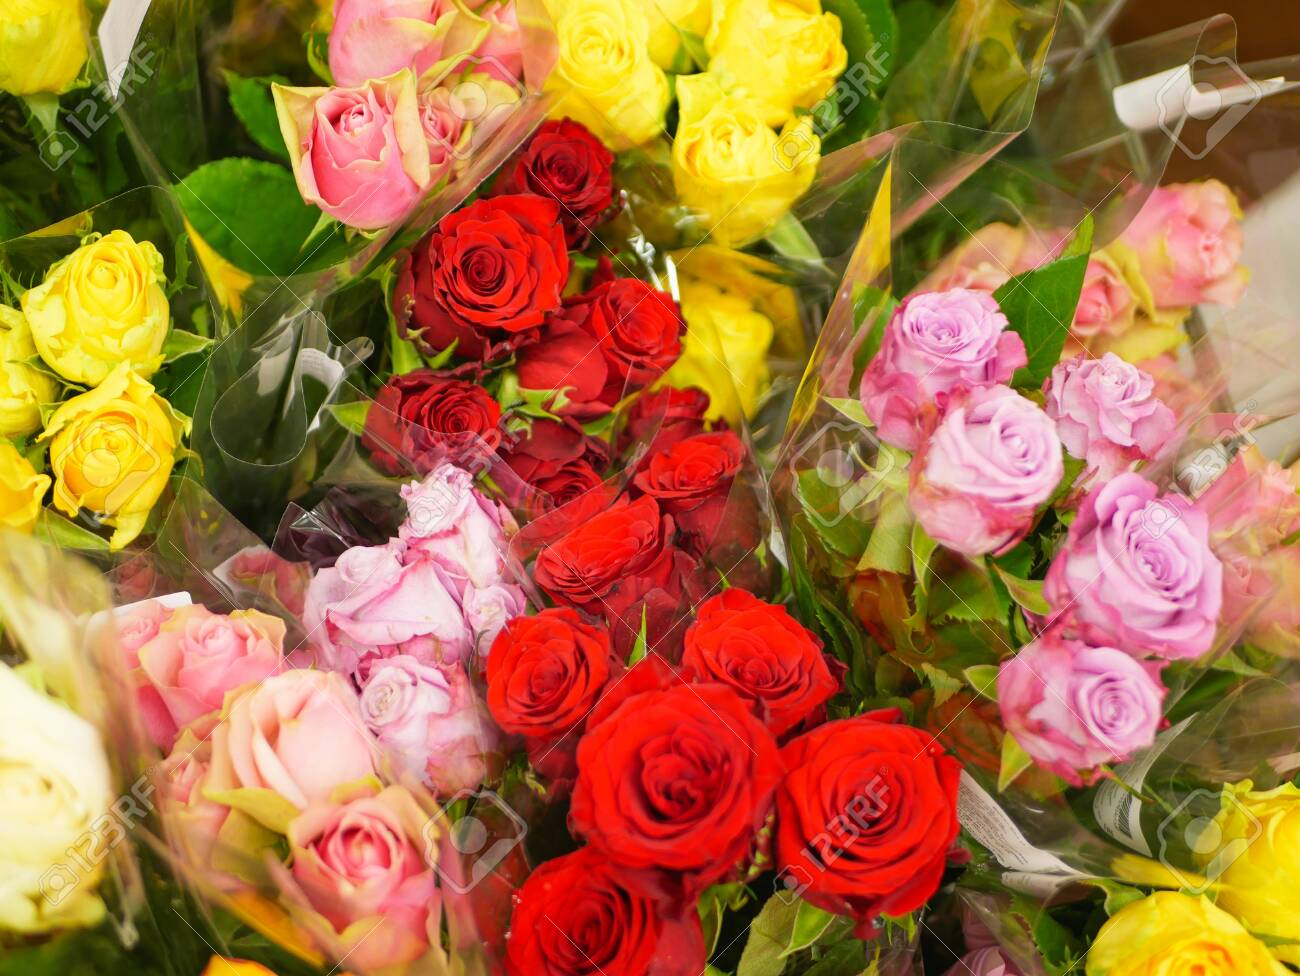 bouquets of flowers. Many bouquets of flowers. Roses, lilies, chrysanthemums. Close-up. - 145158490